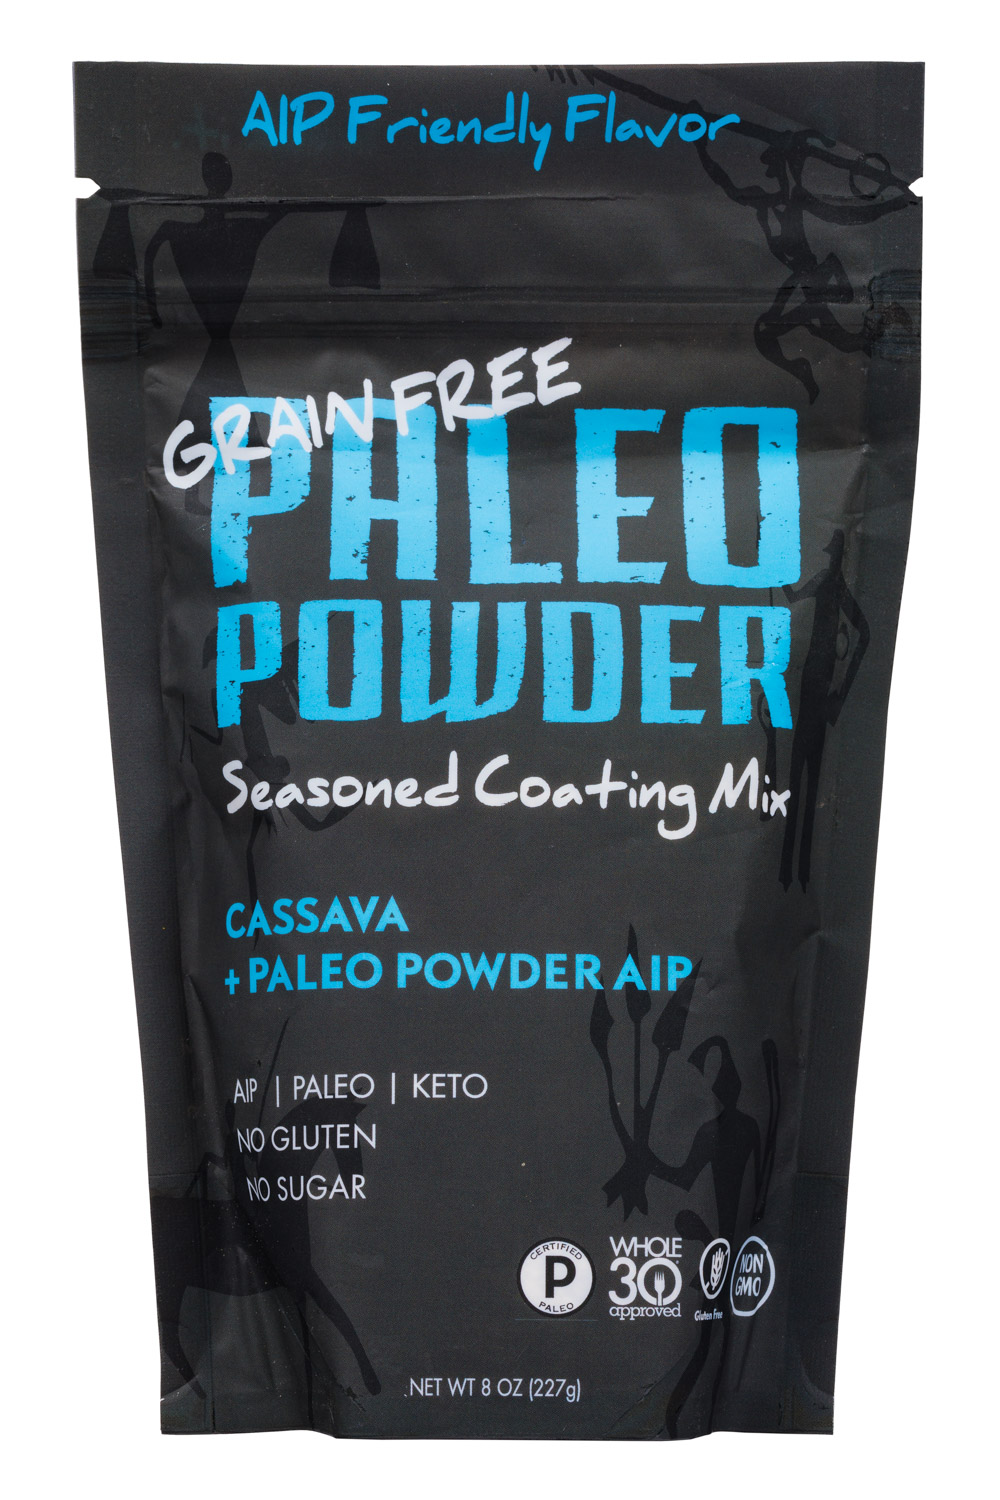 Cassava + Paleo Powder Aip